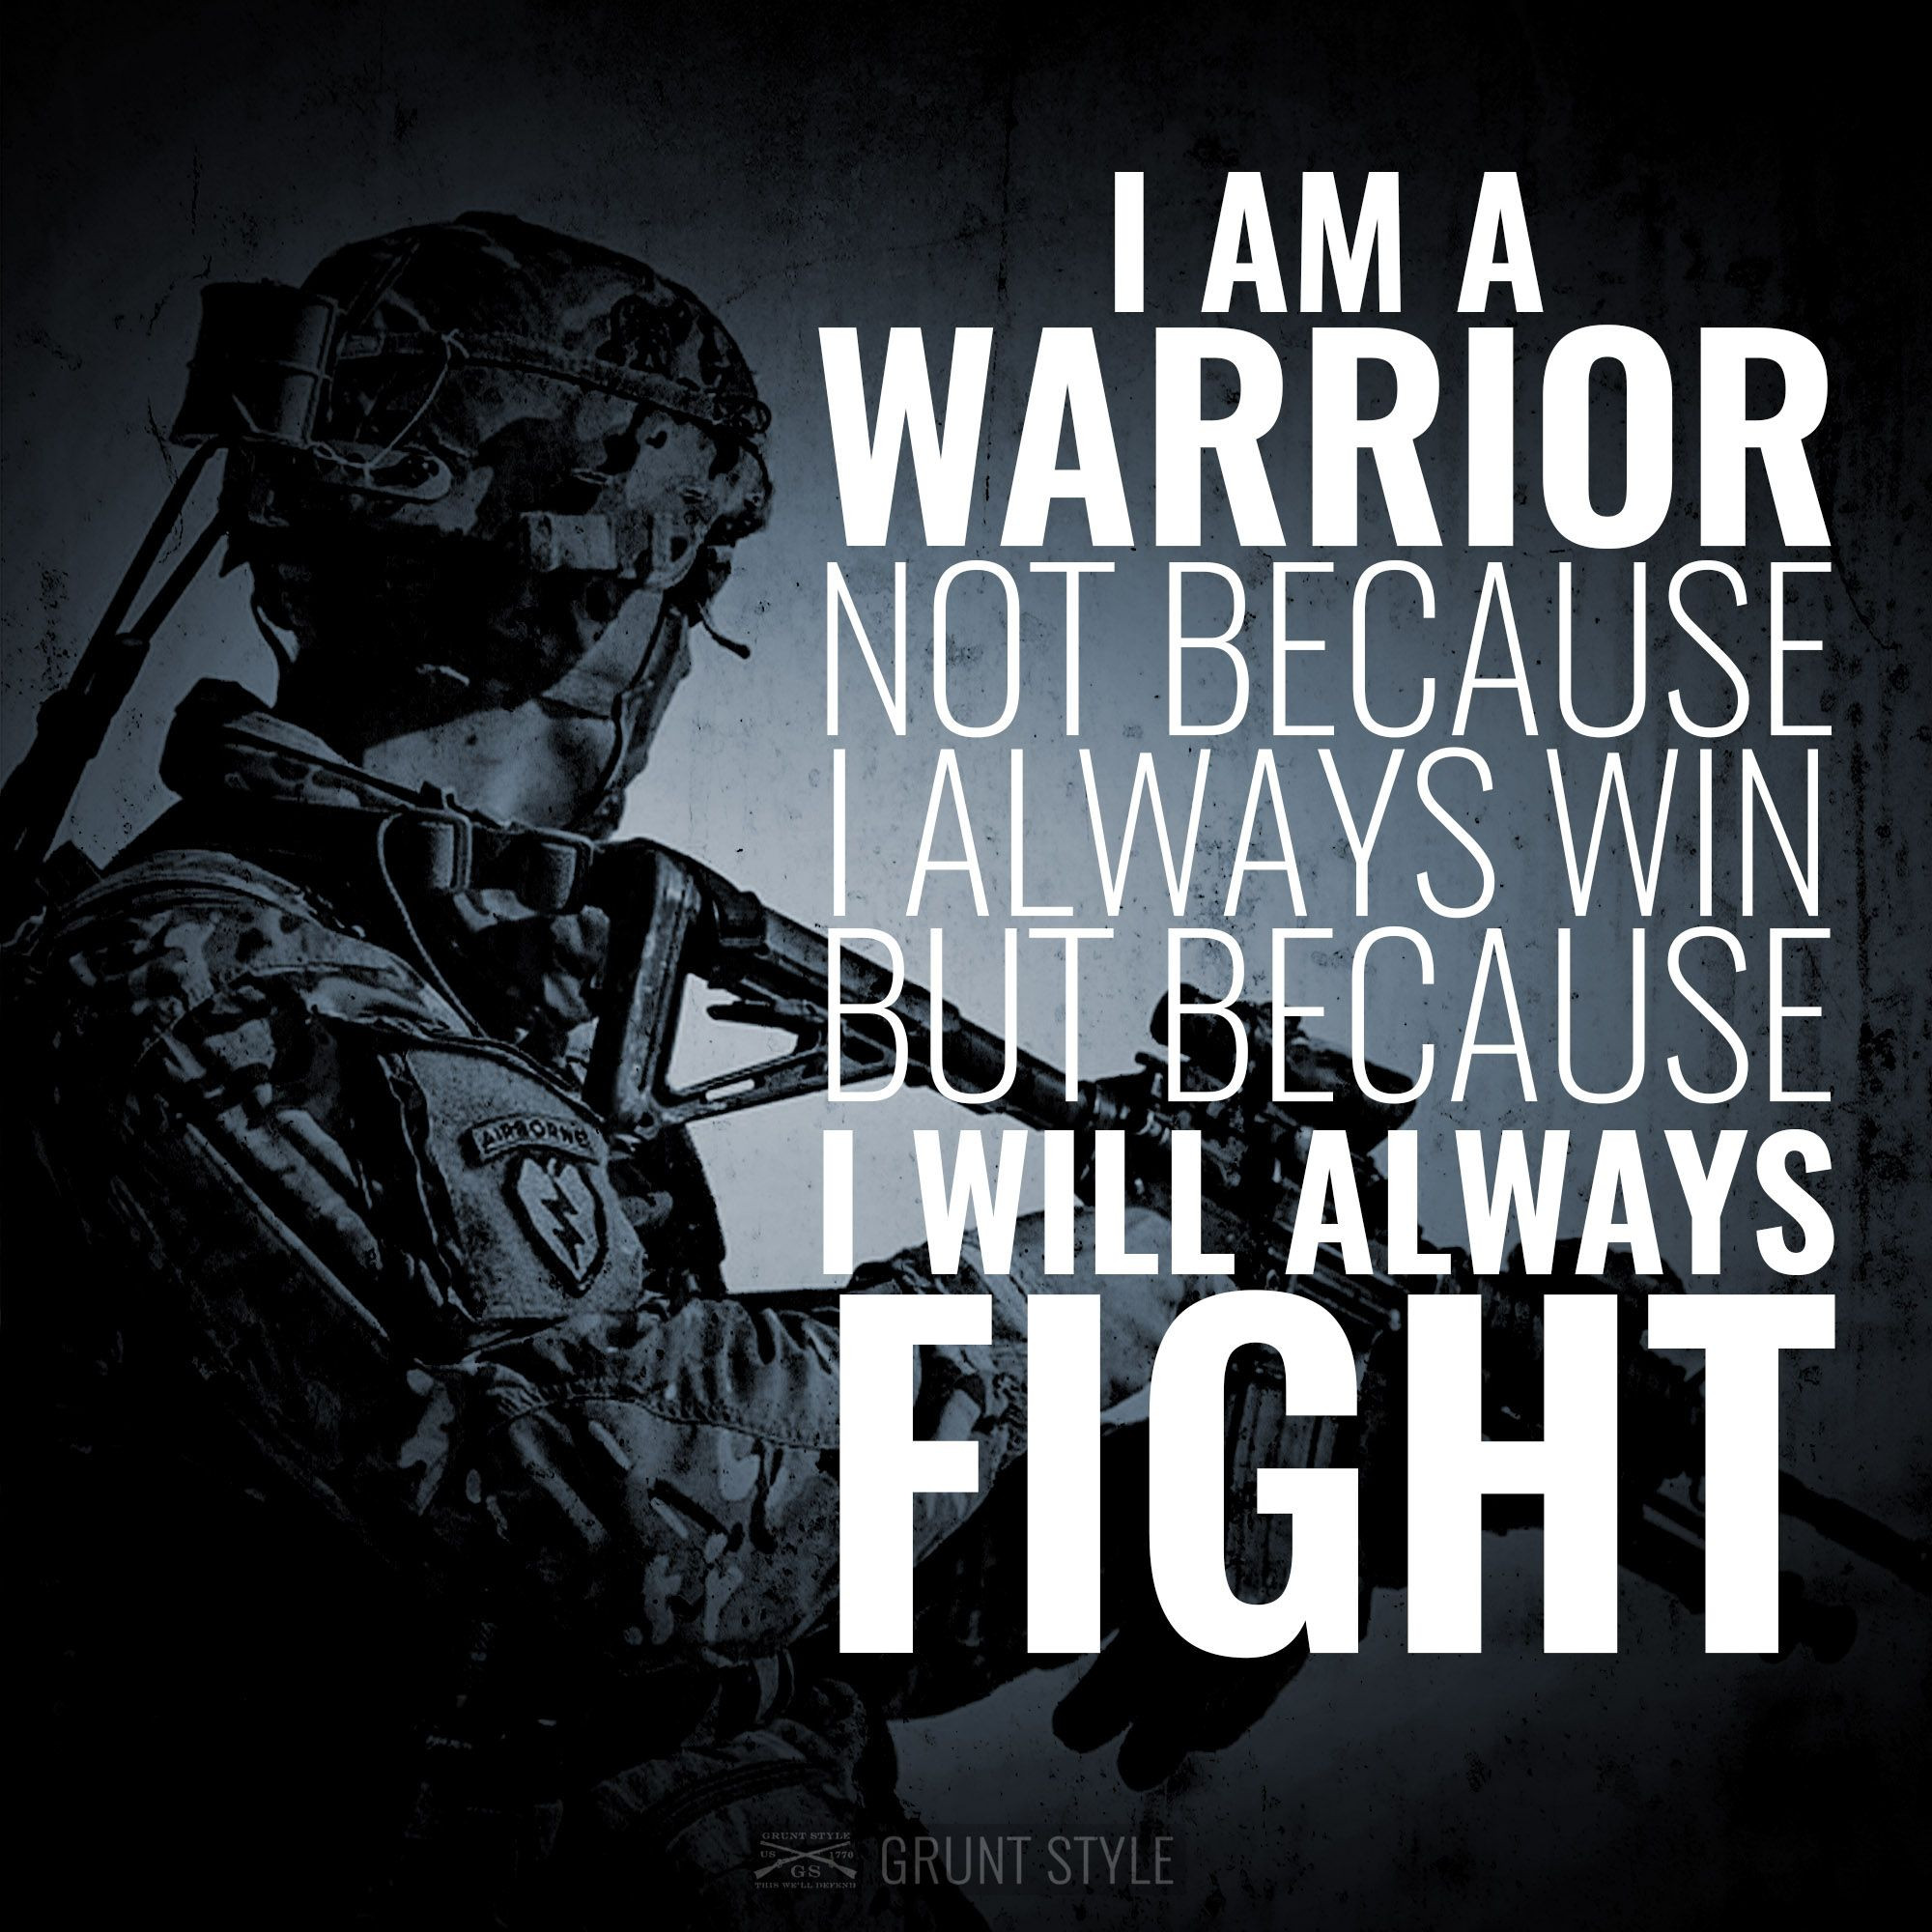 Military Motivational Quotes  I am a warrior not because I always win but because I